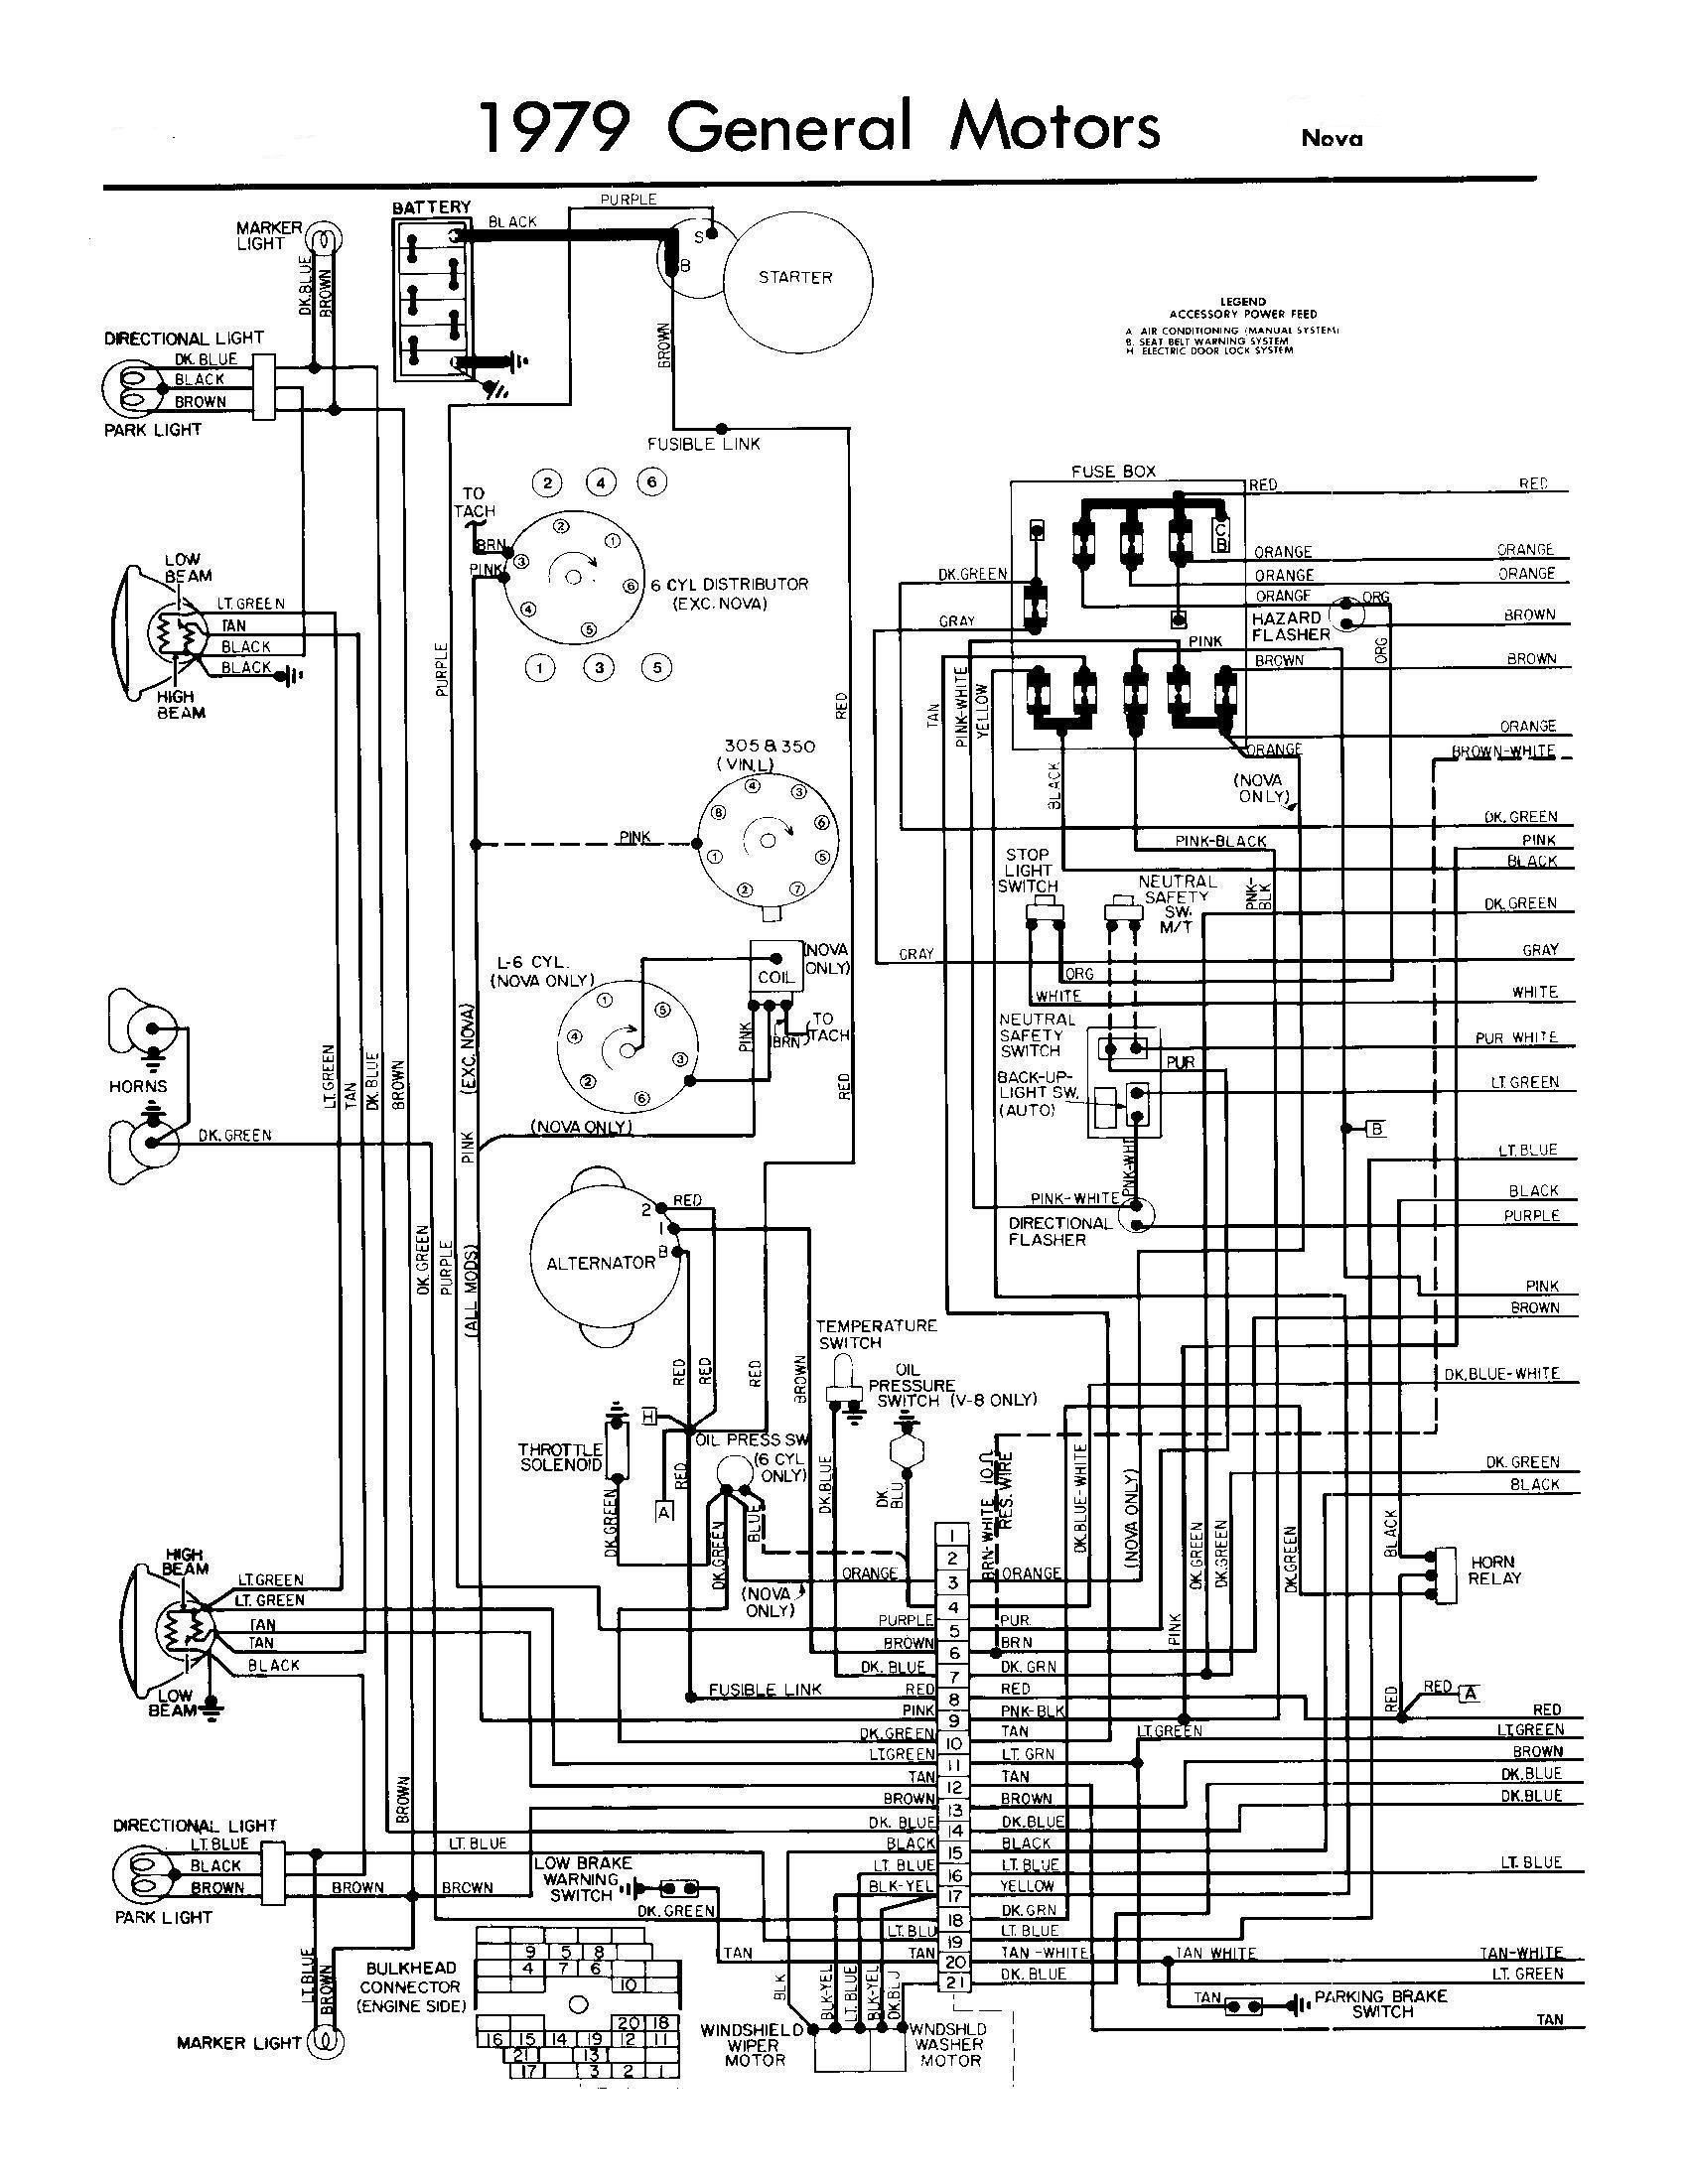 wiring diagram also 1965 chevy truck fuse block besides 1987 chevy1959 Chevy Truck Engine Wiring Diagram Also Vw Beetle Wiring Diagram #18